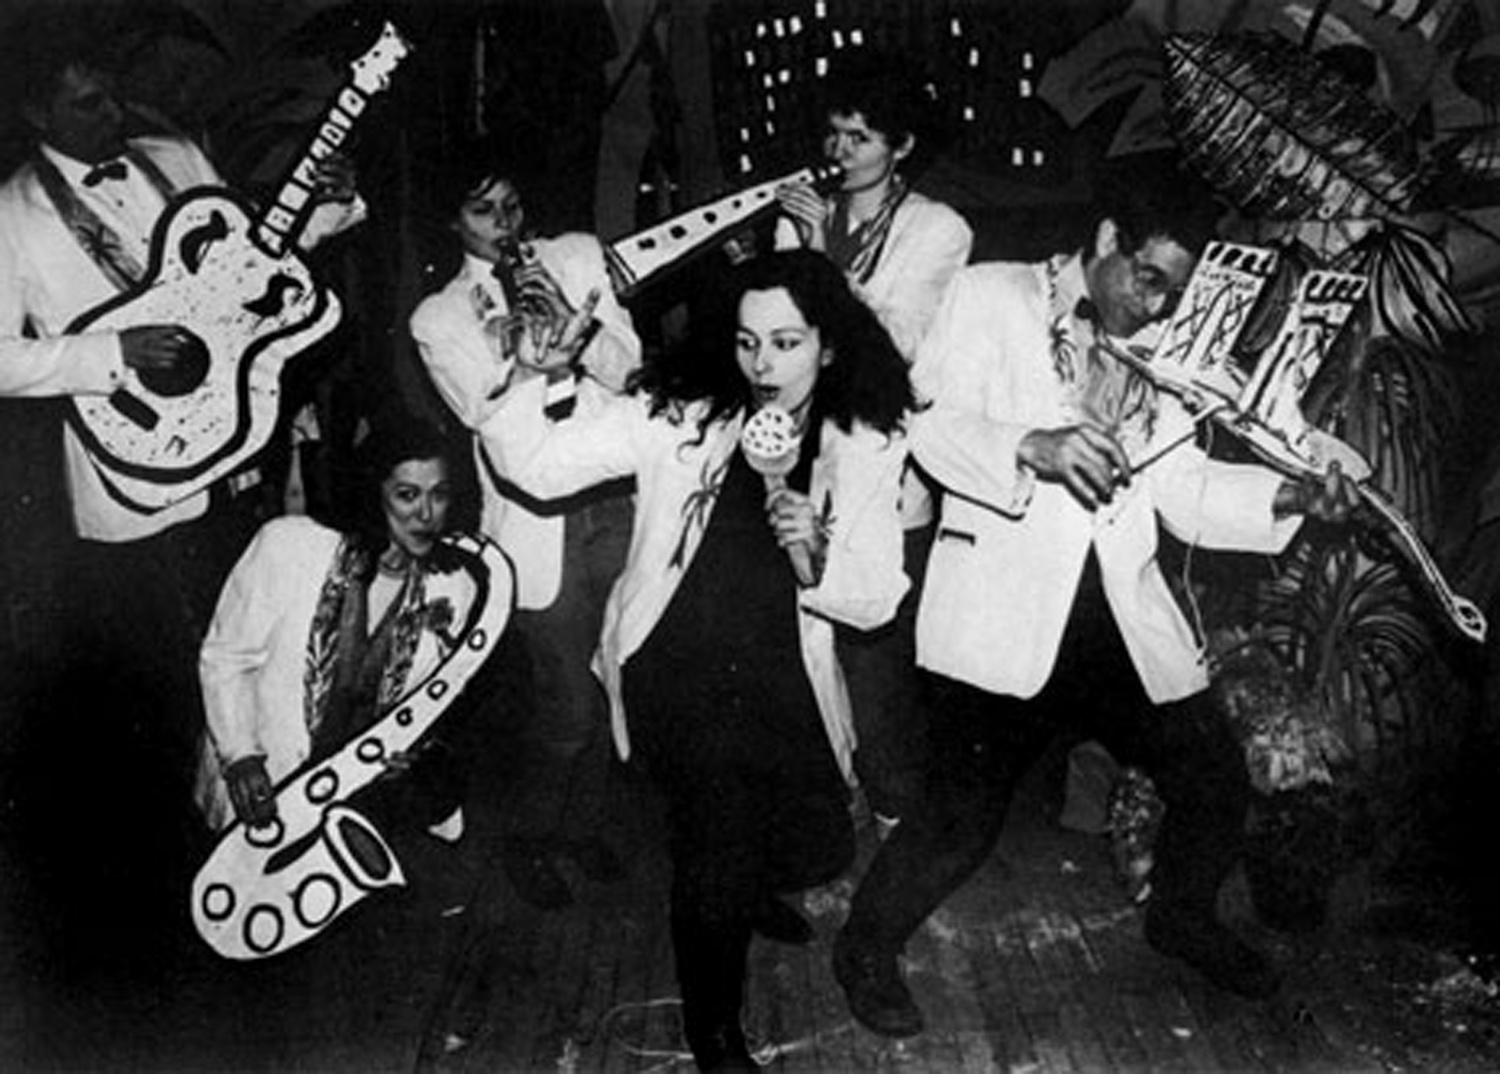 Publicity photo of the Cardboard Air Band at No Rio. From left to right, Walter Robinson, Ellen Cooper, Bebe Smith, Kiki Smith, Christy Rupp and Bobby G